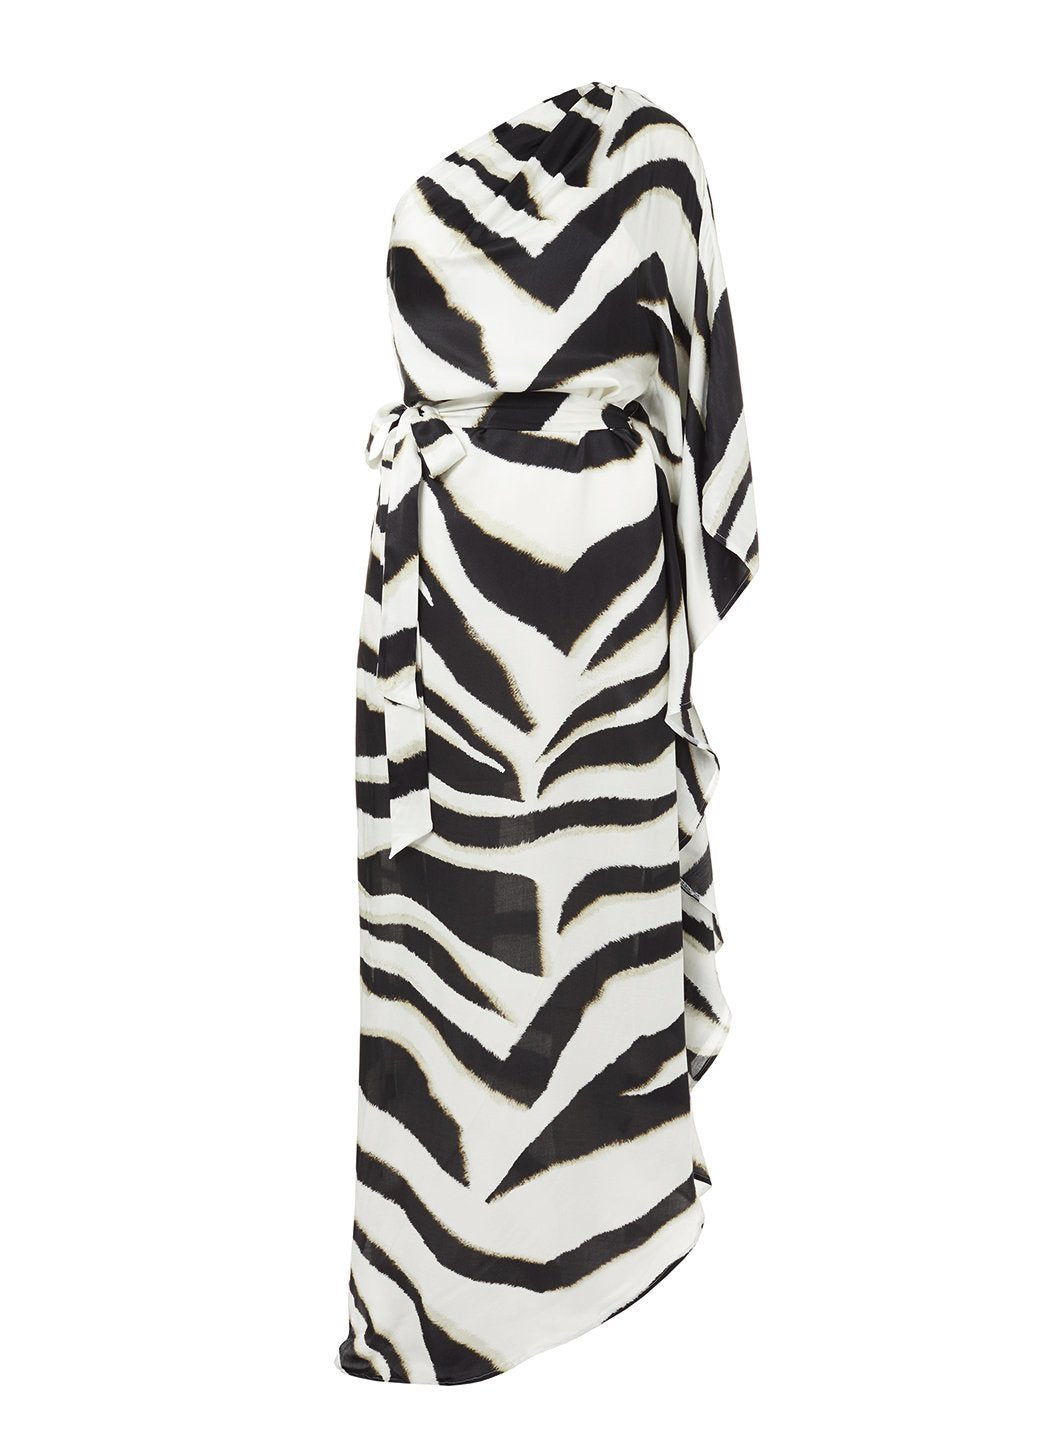 lauren zebra oneshoulder belted floor length dress 2019